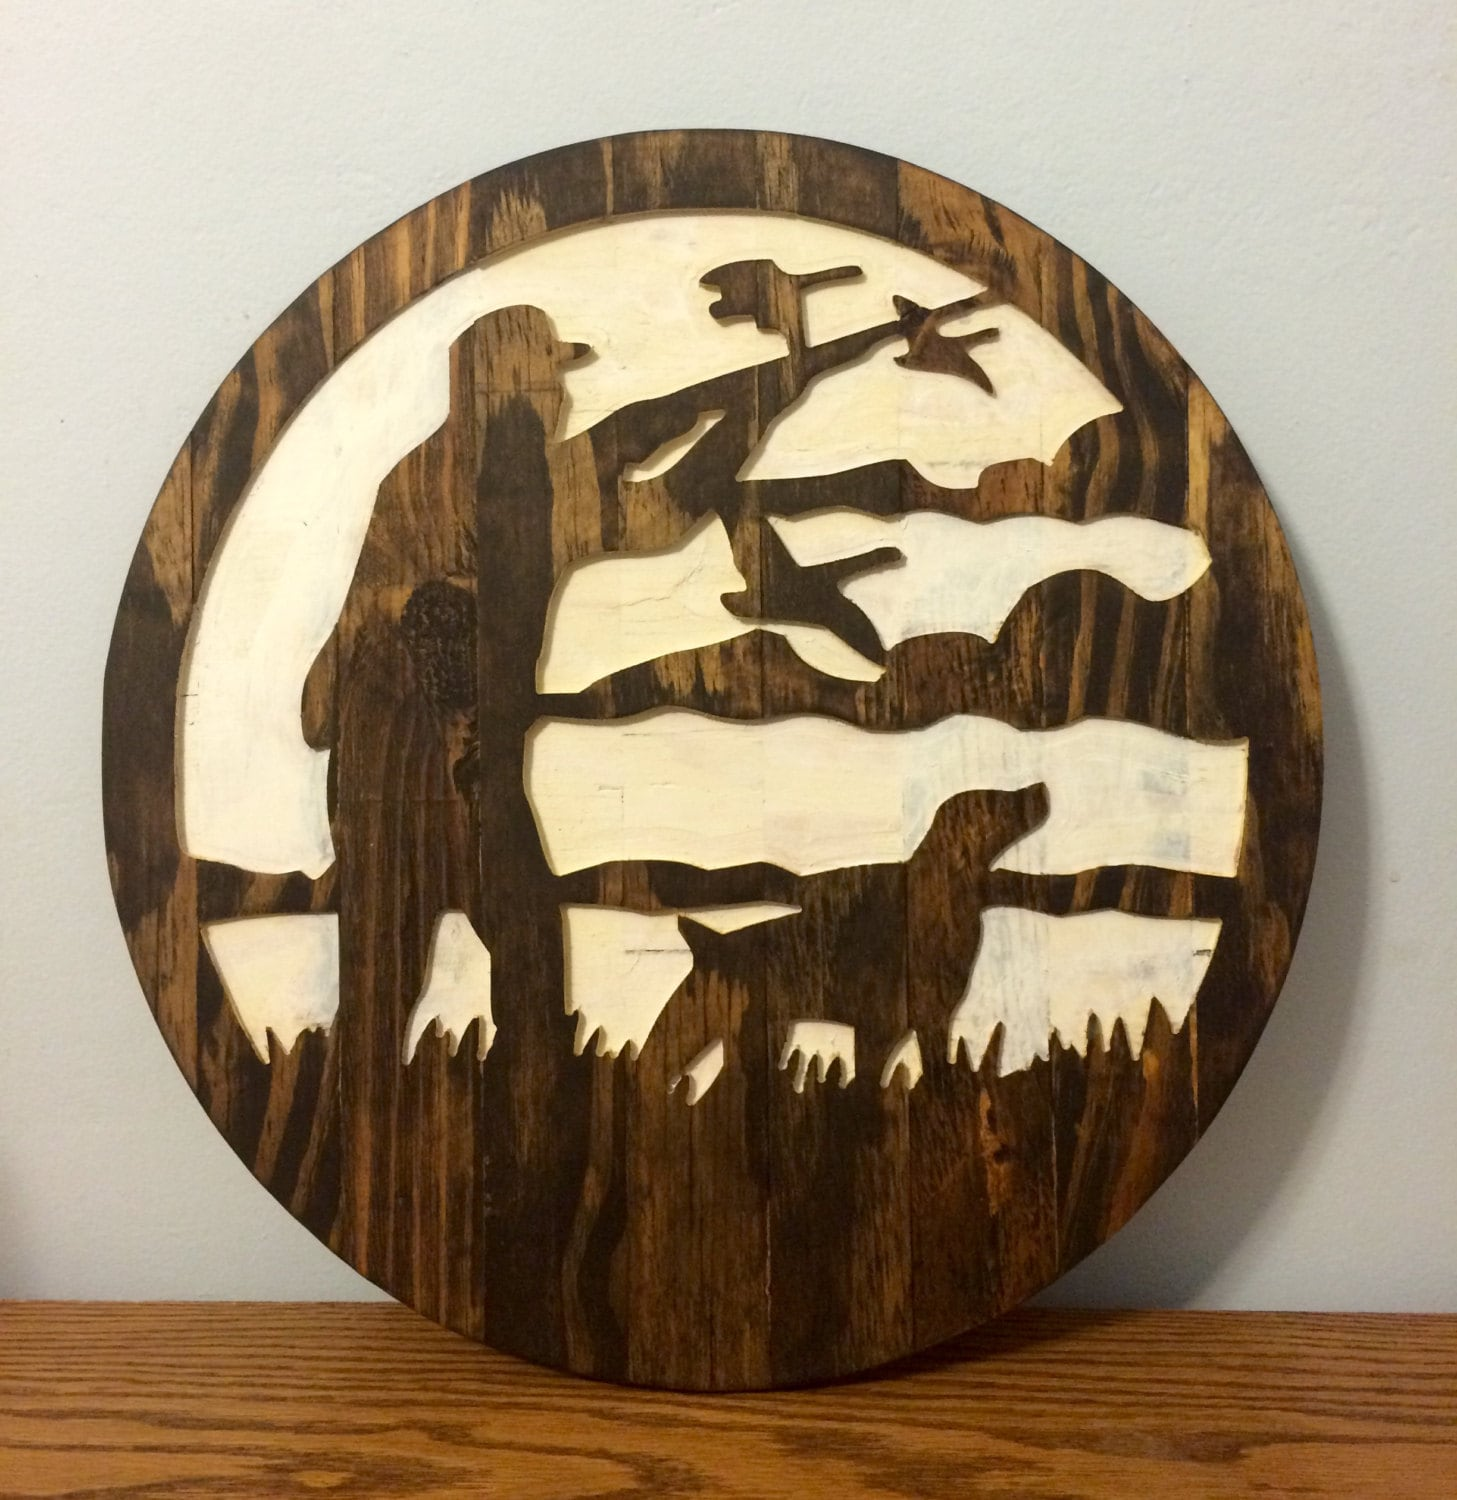 Ducks Unlimited Home Decor: Man And Dog Duck Hunting Silhouette Wall Decor By RummWoodWorx